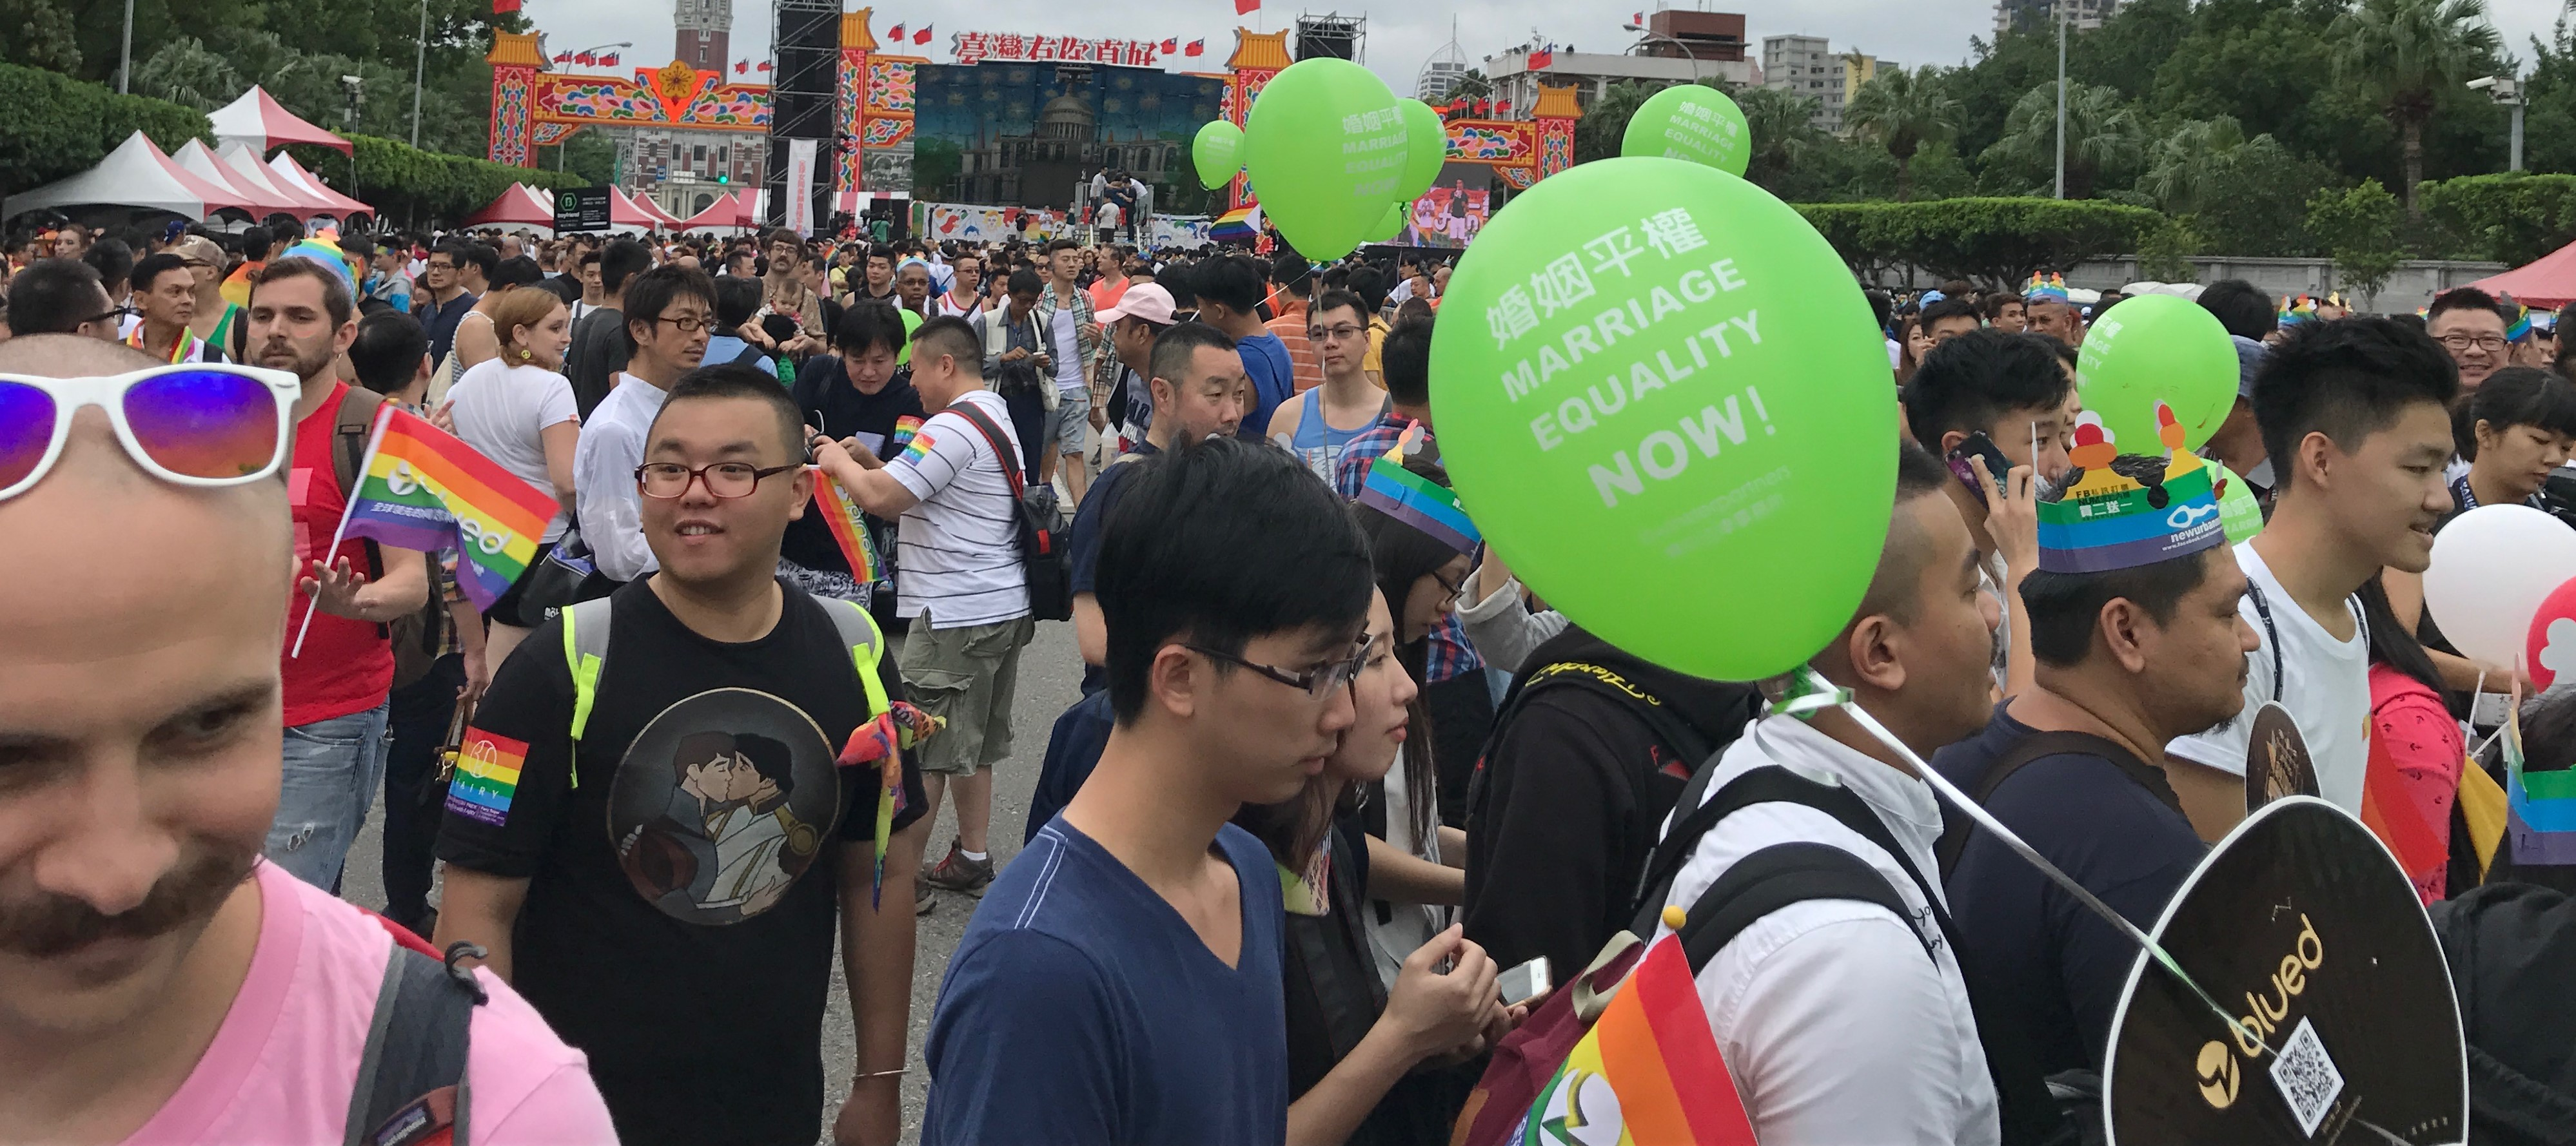 Taiwan proposes same-sex marriage bill